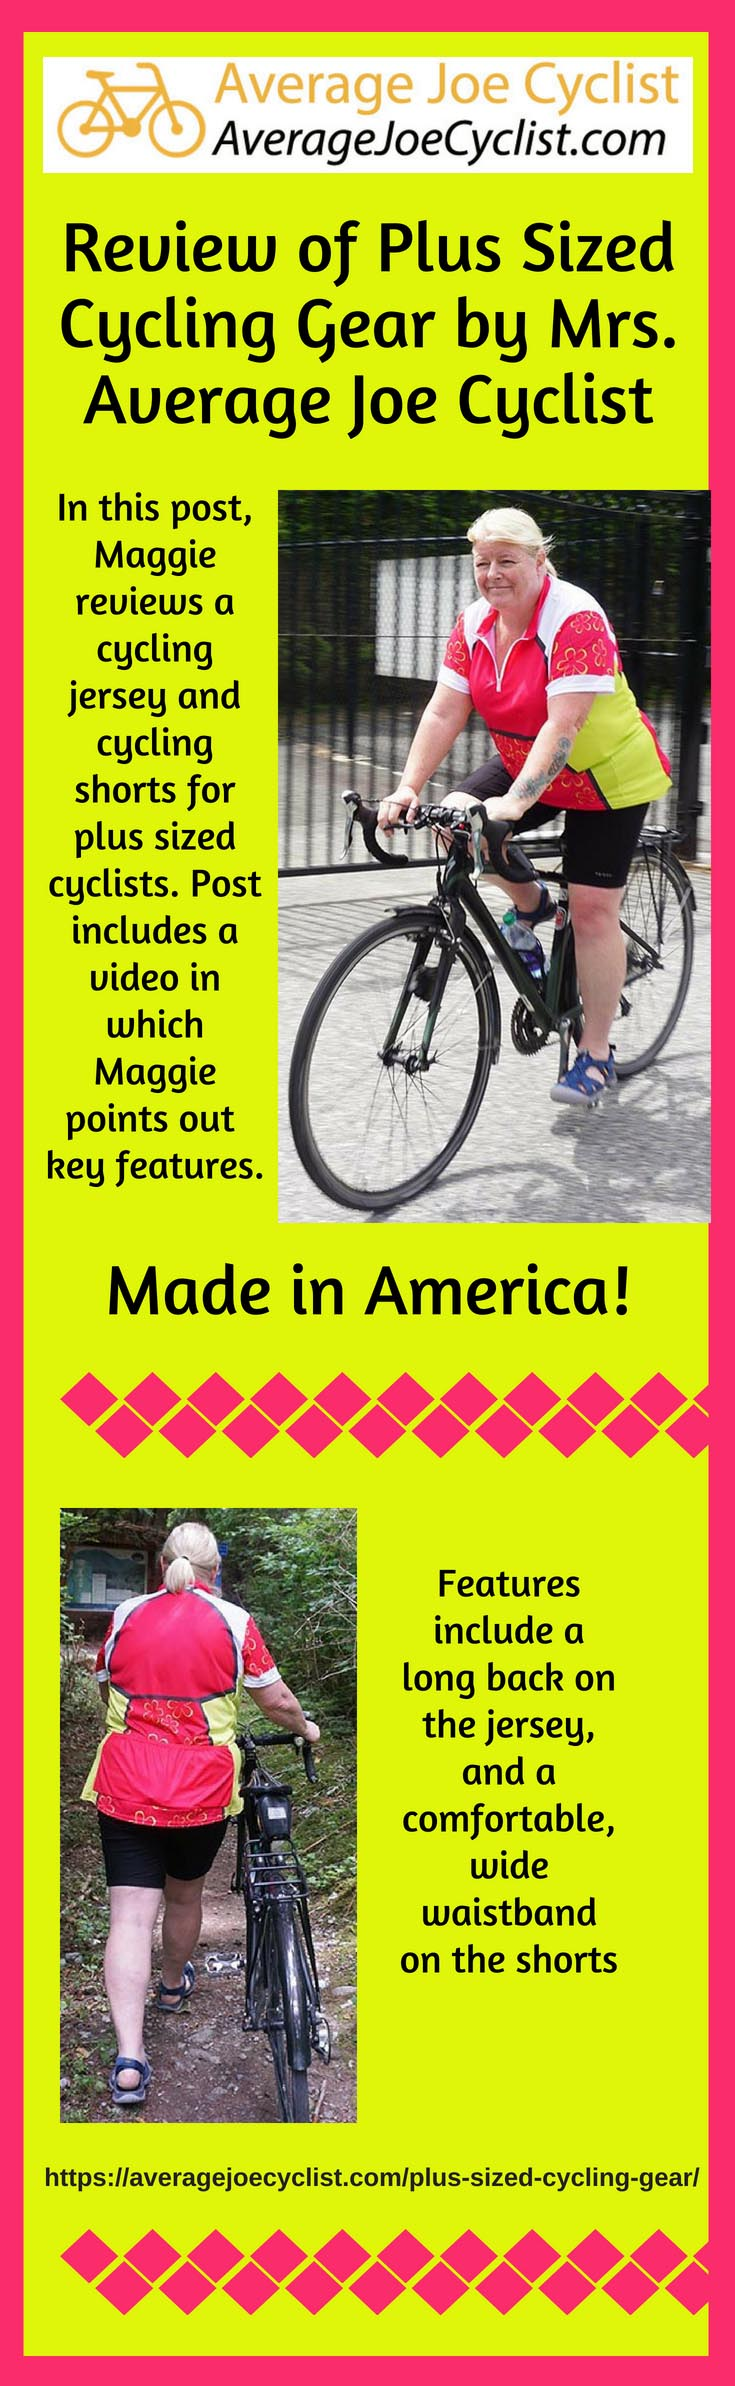 Review of Plus Sized Cycling Gear by Mrs. Average Joe Cyclist